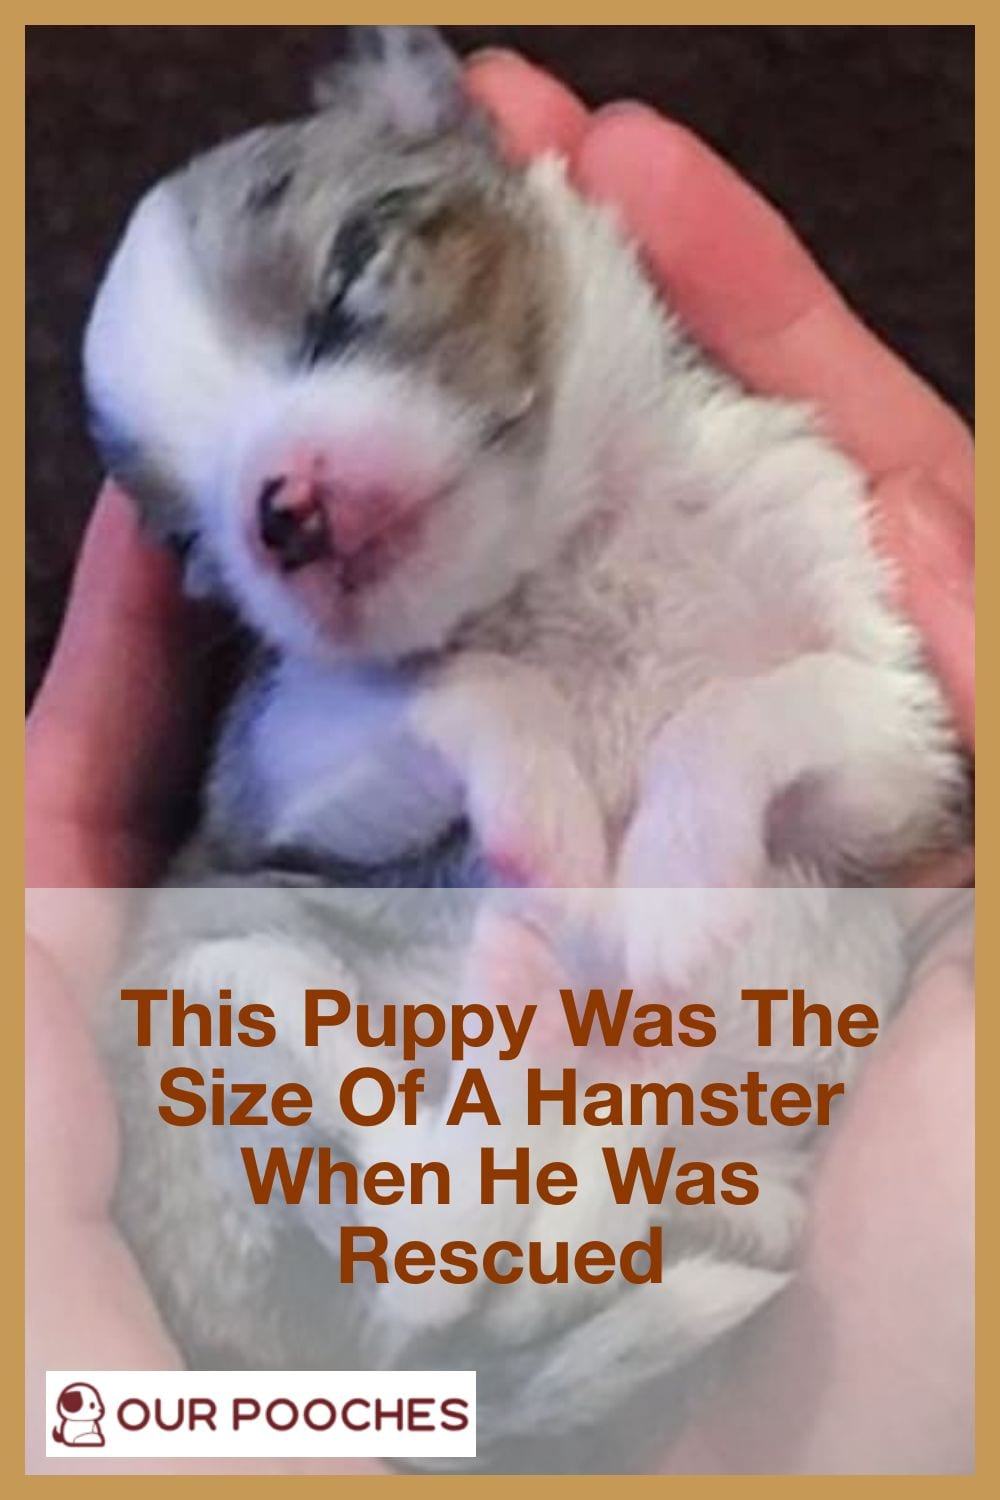 Pup was size of hamster when rescued